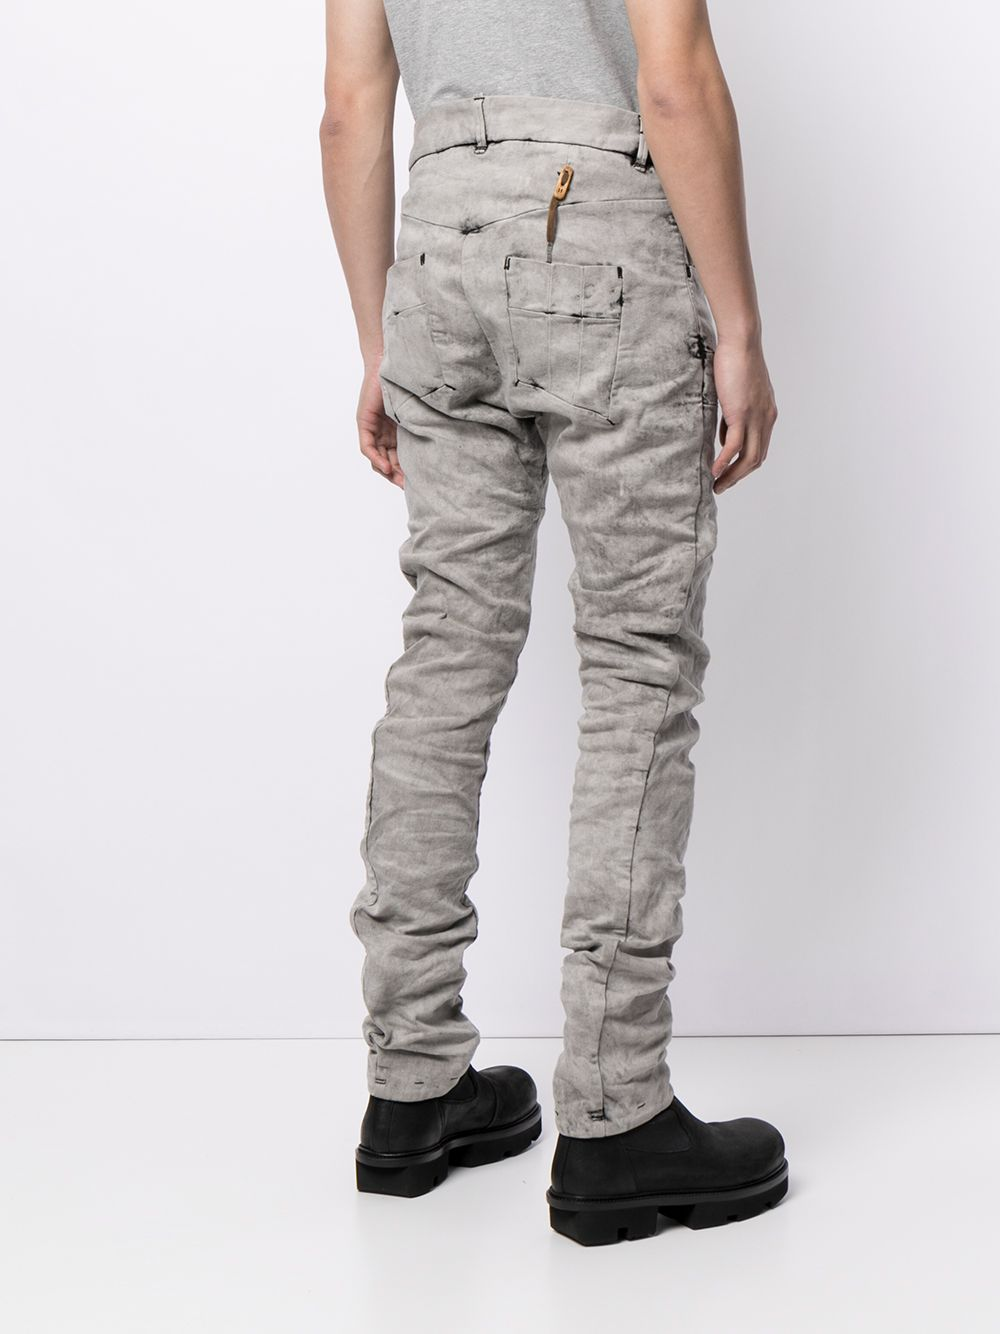 BORIS BIDJAN SABERI MEN P13 TIGHT FIT ACID DYED PANTS